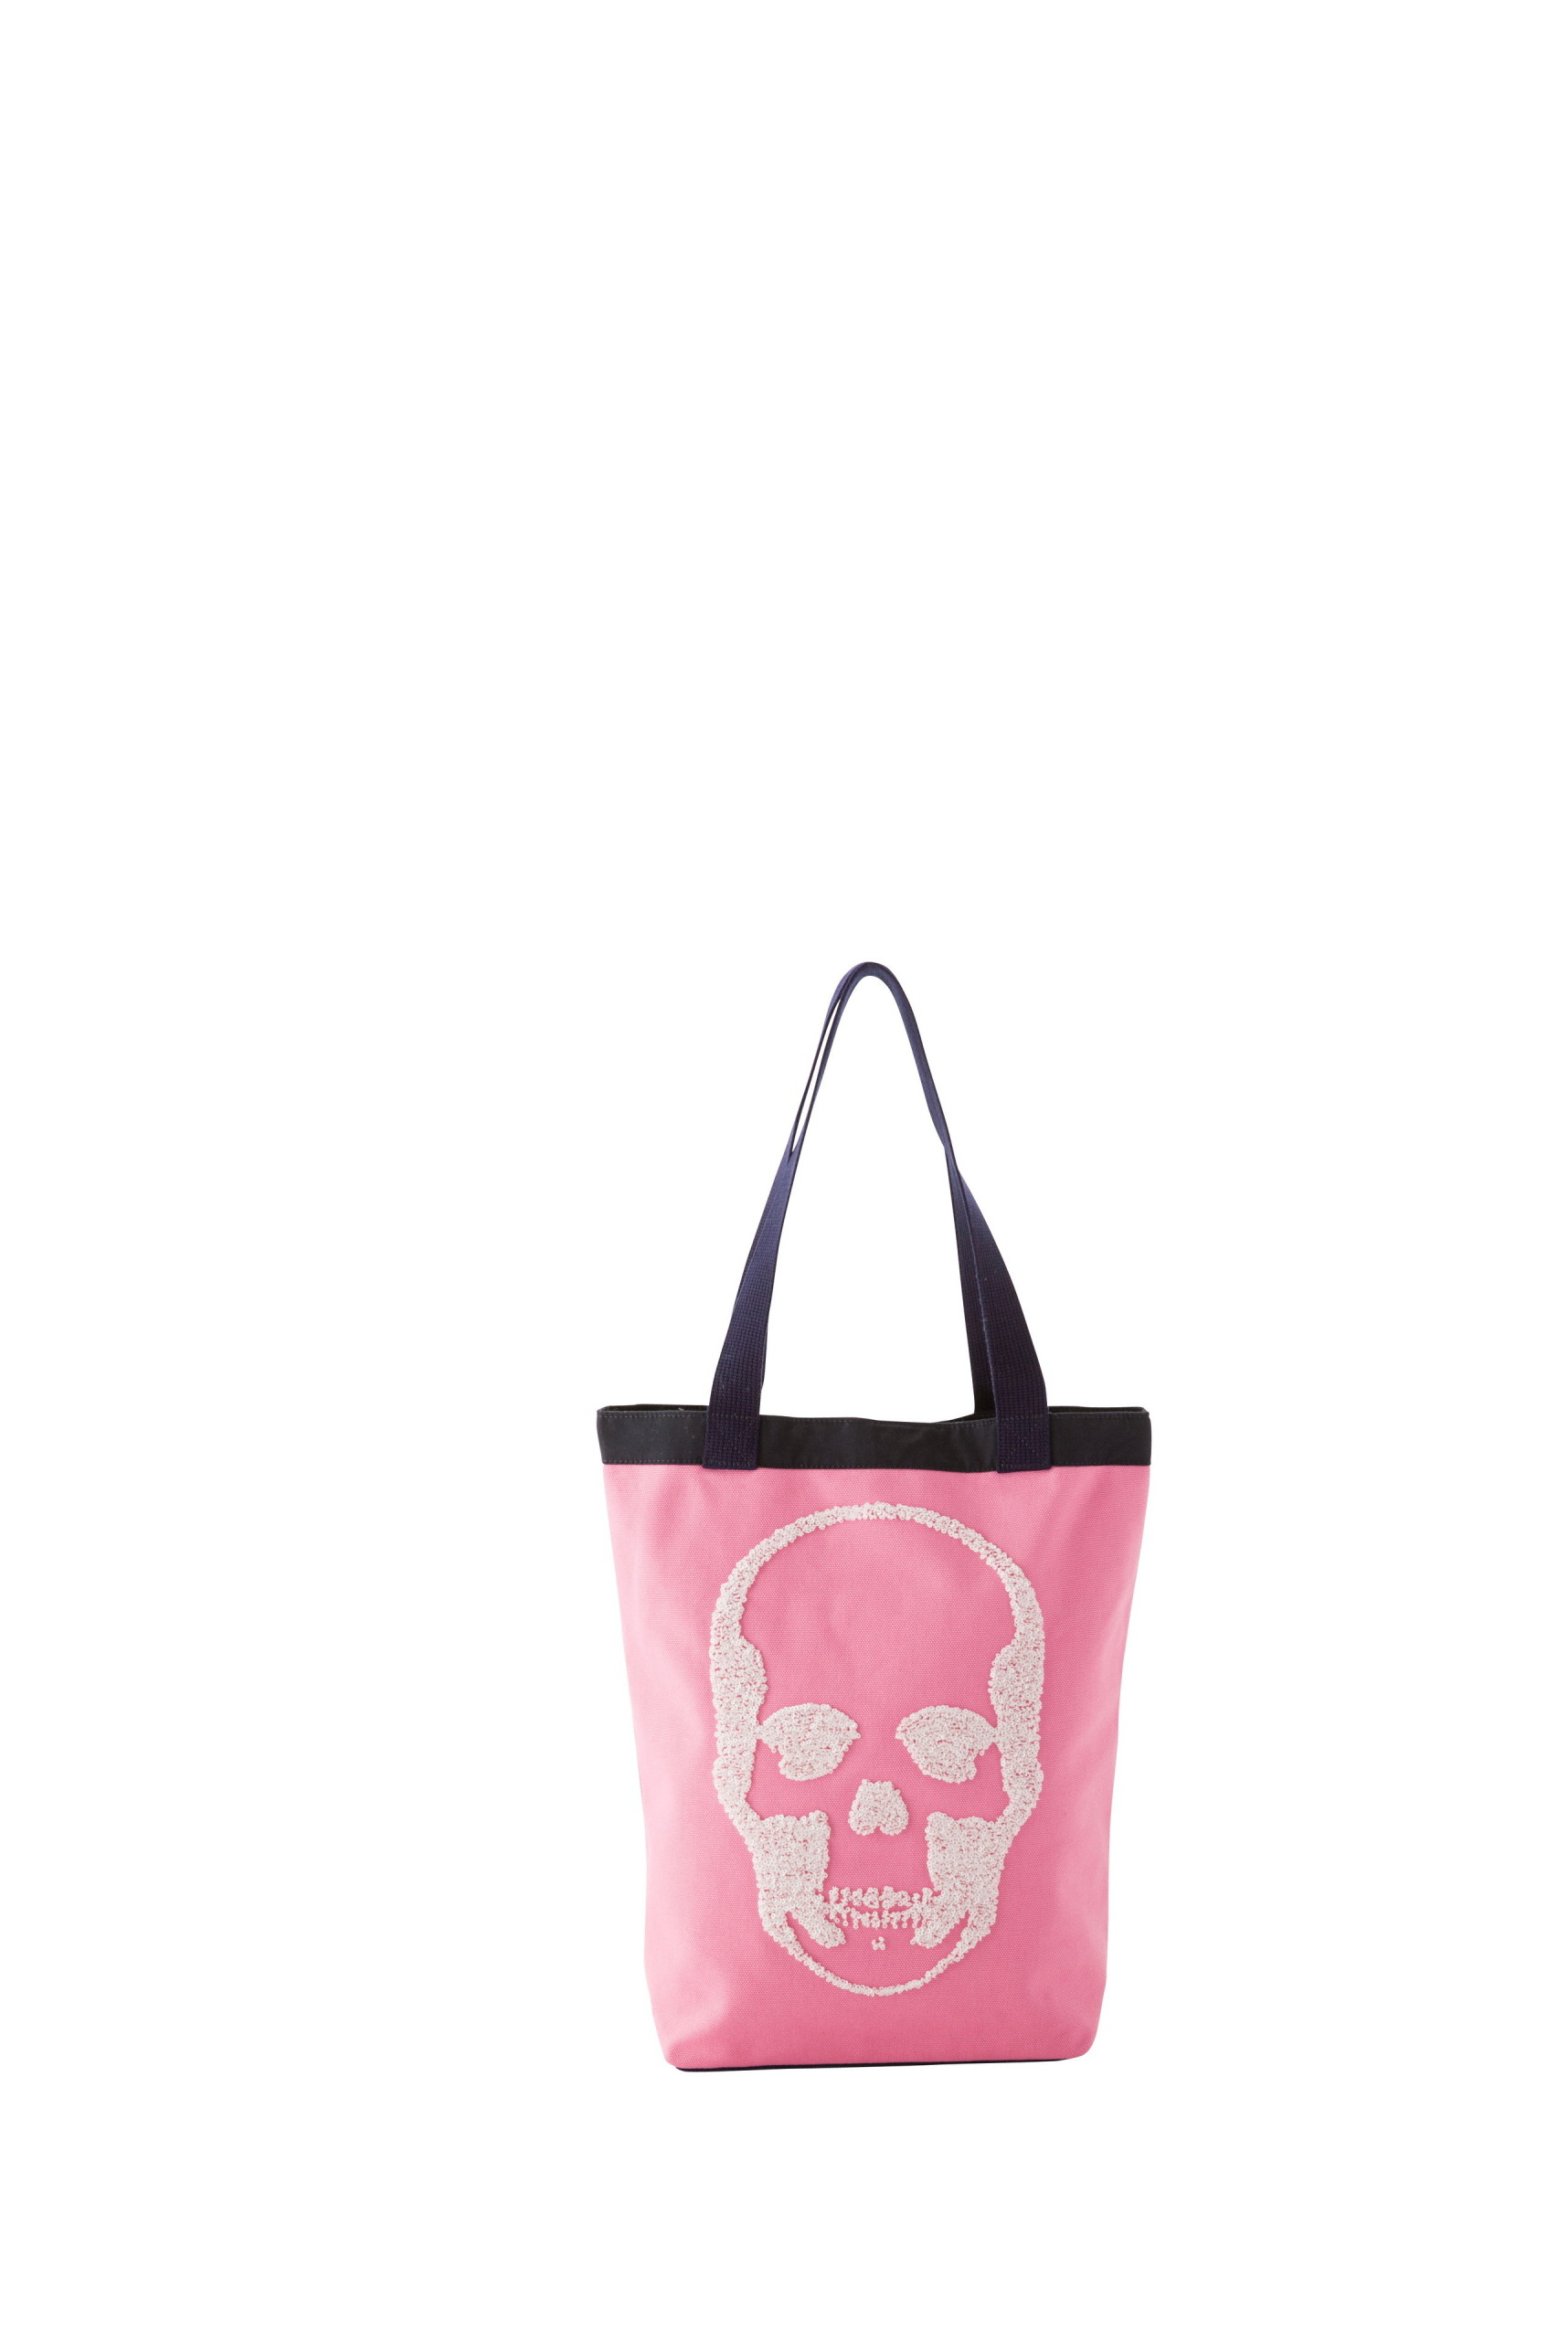 CANVAS TOTE MEDIUM WITH 3D SEQUIN SKULL(F) WITH LPF LOGO(B) EMBROIDERY